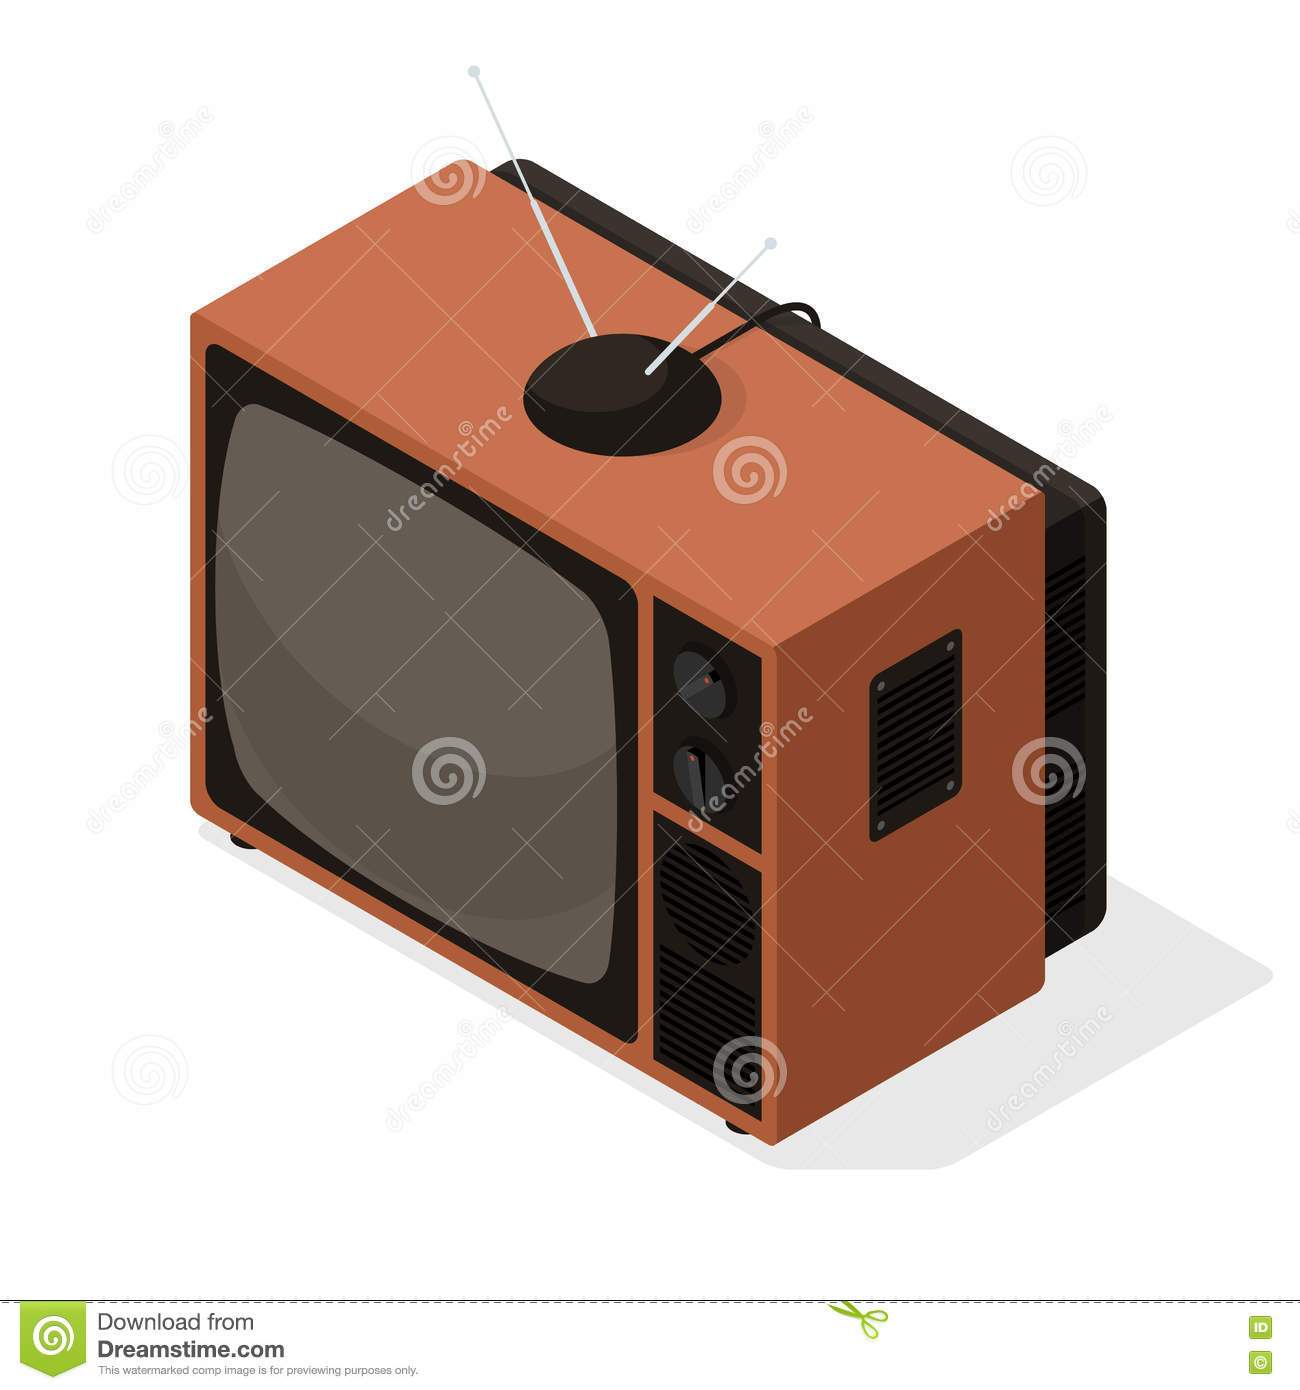 isometric vector icon of retro television tv set with aerial on the